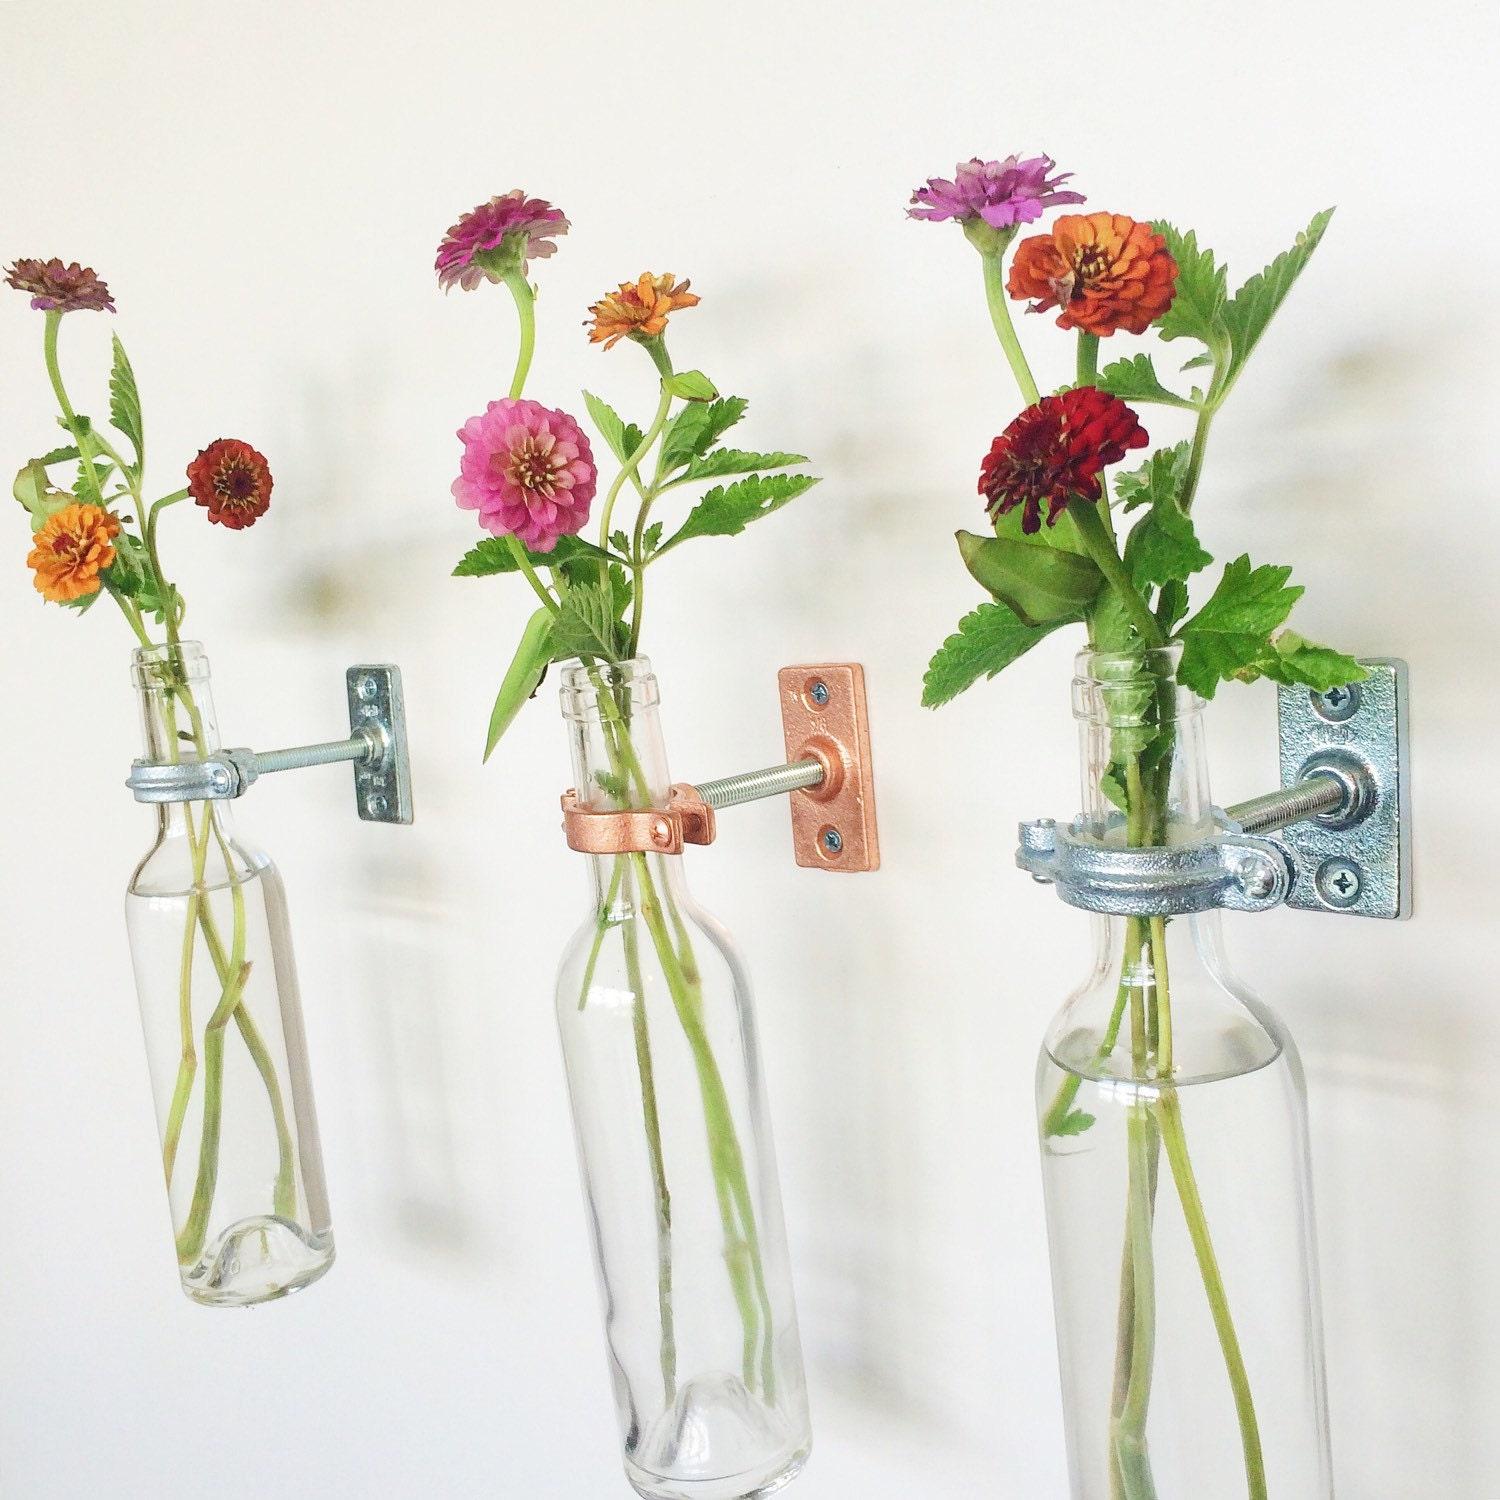 3 wine bottle wall flower vases gift for mom wall flower zoom amipublicfo Image collections